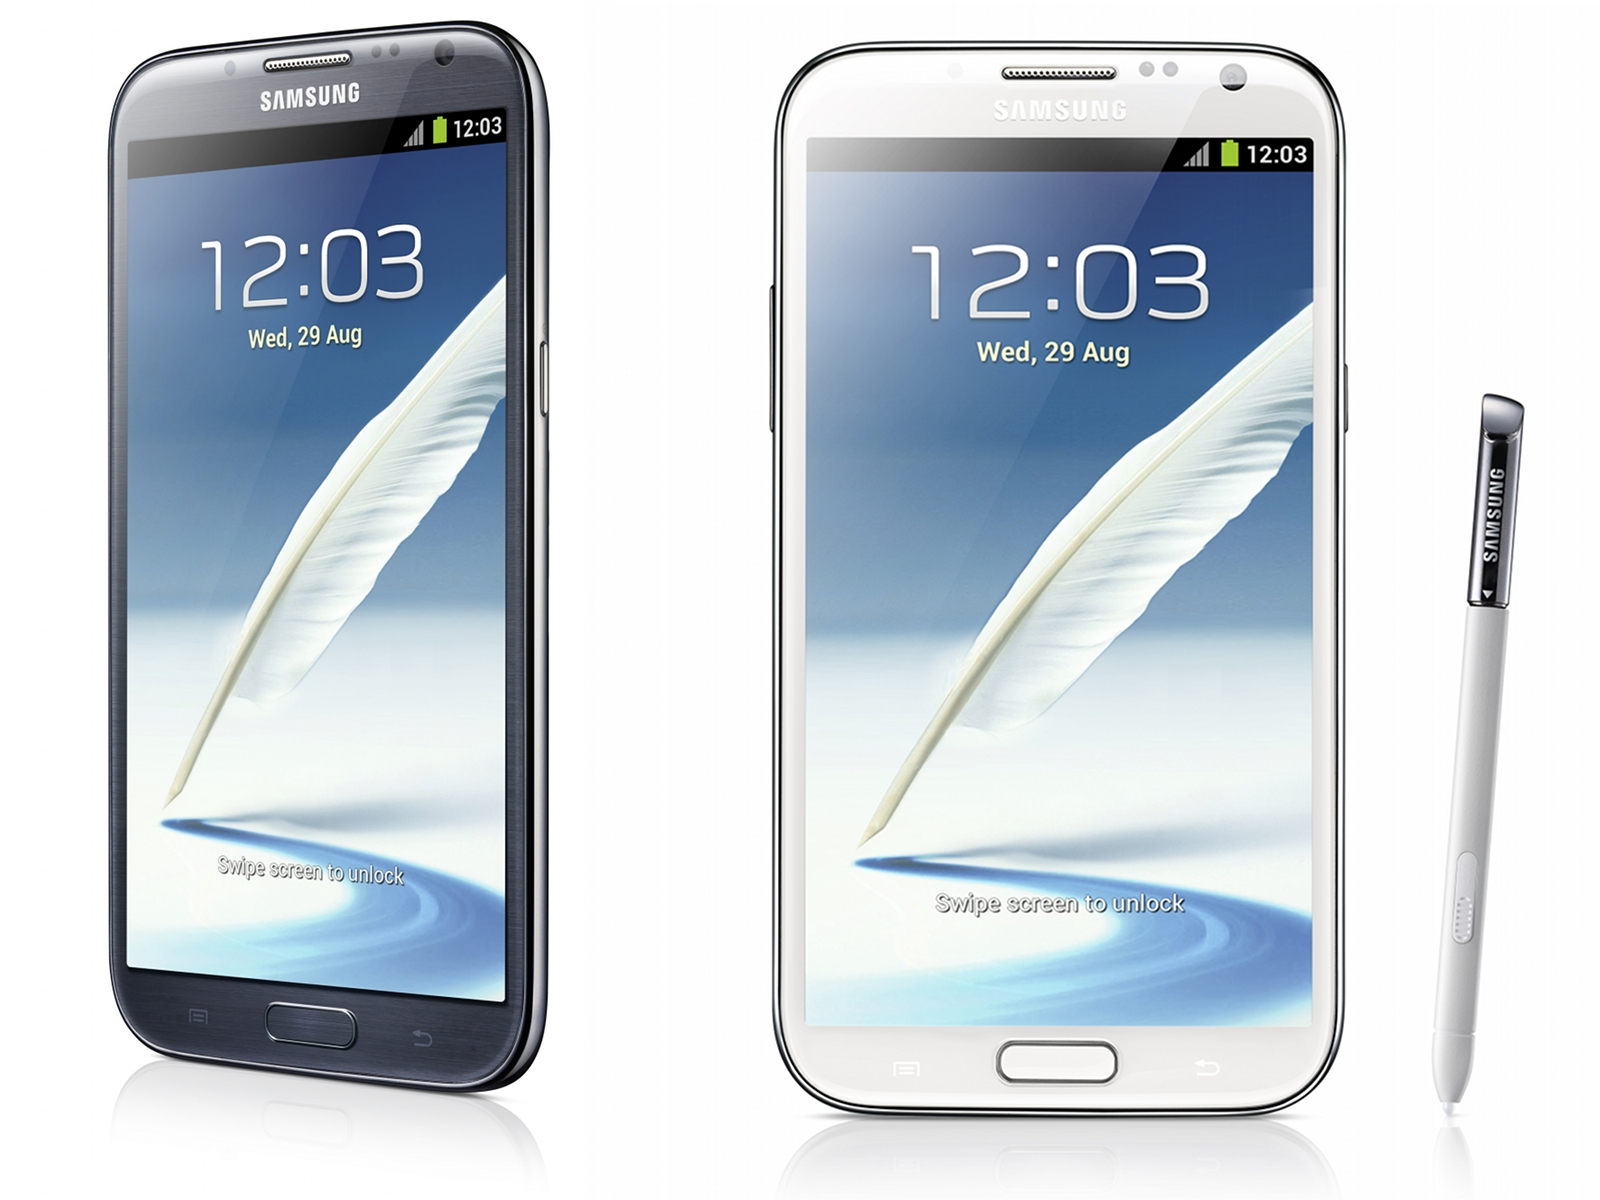 Samsung Galaxy Note II Heading to T-Mobile with LTE